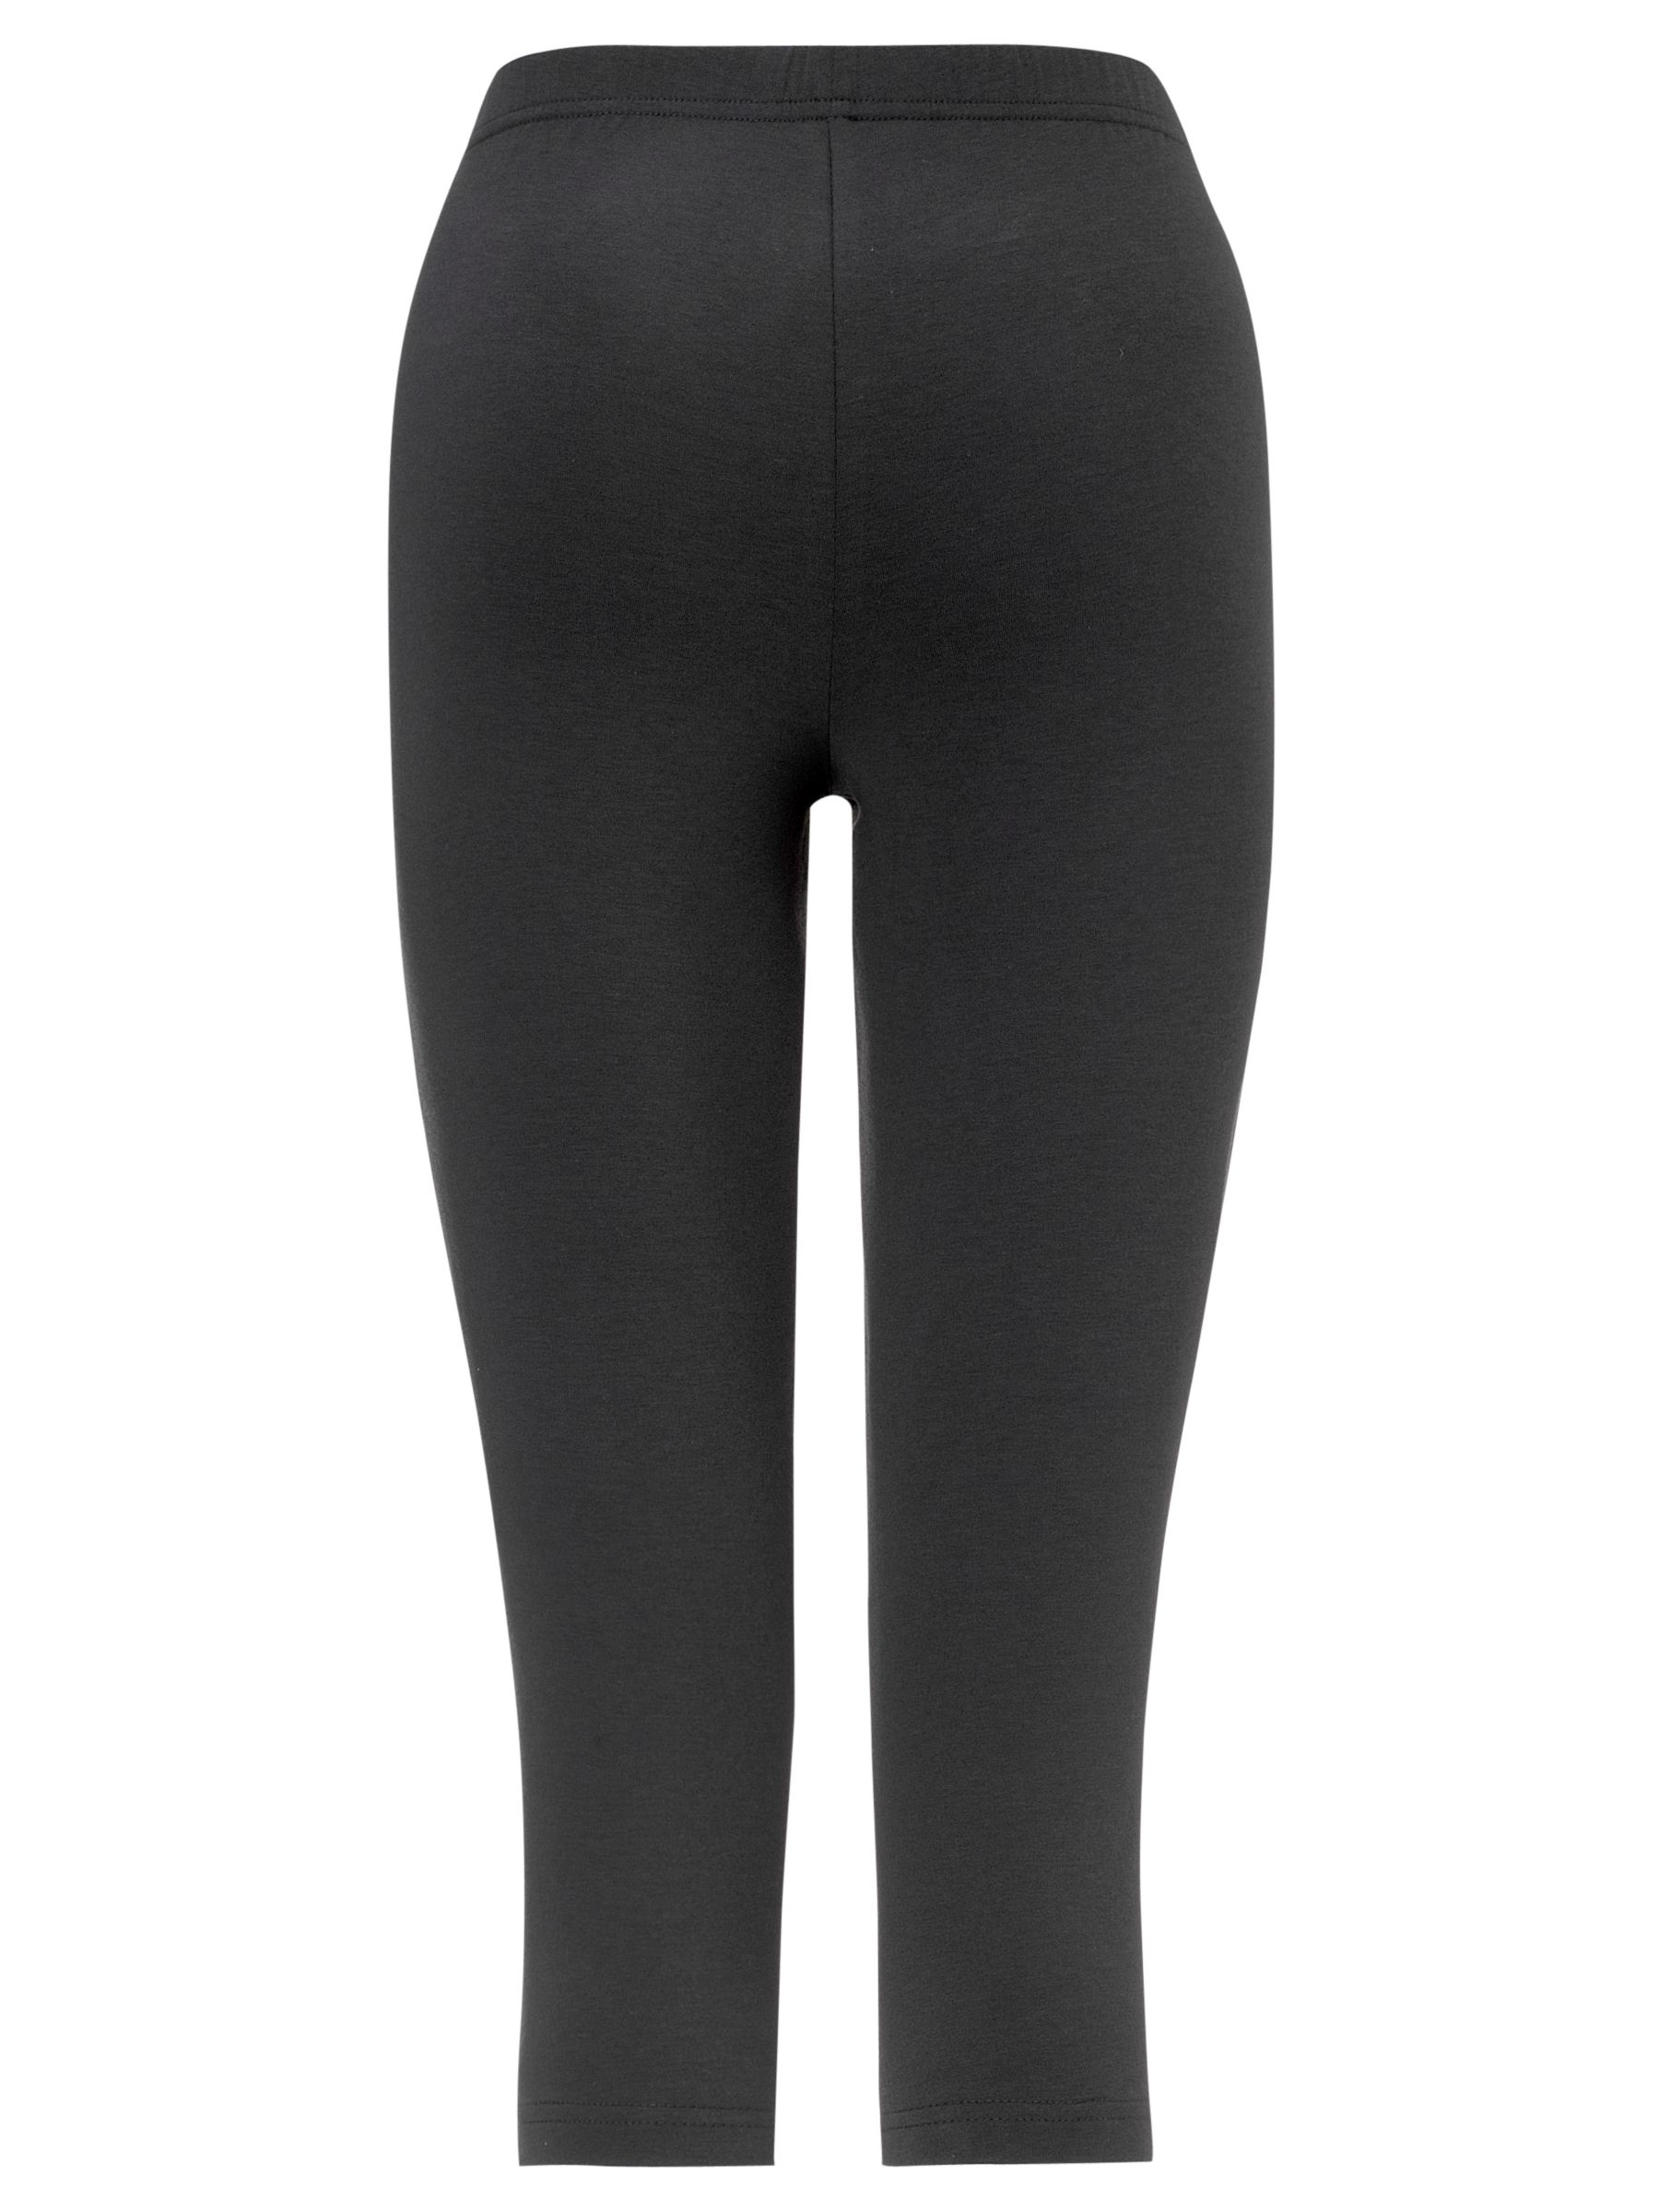 John Lewis Yoga 3/4 Tights, Charcoal